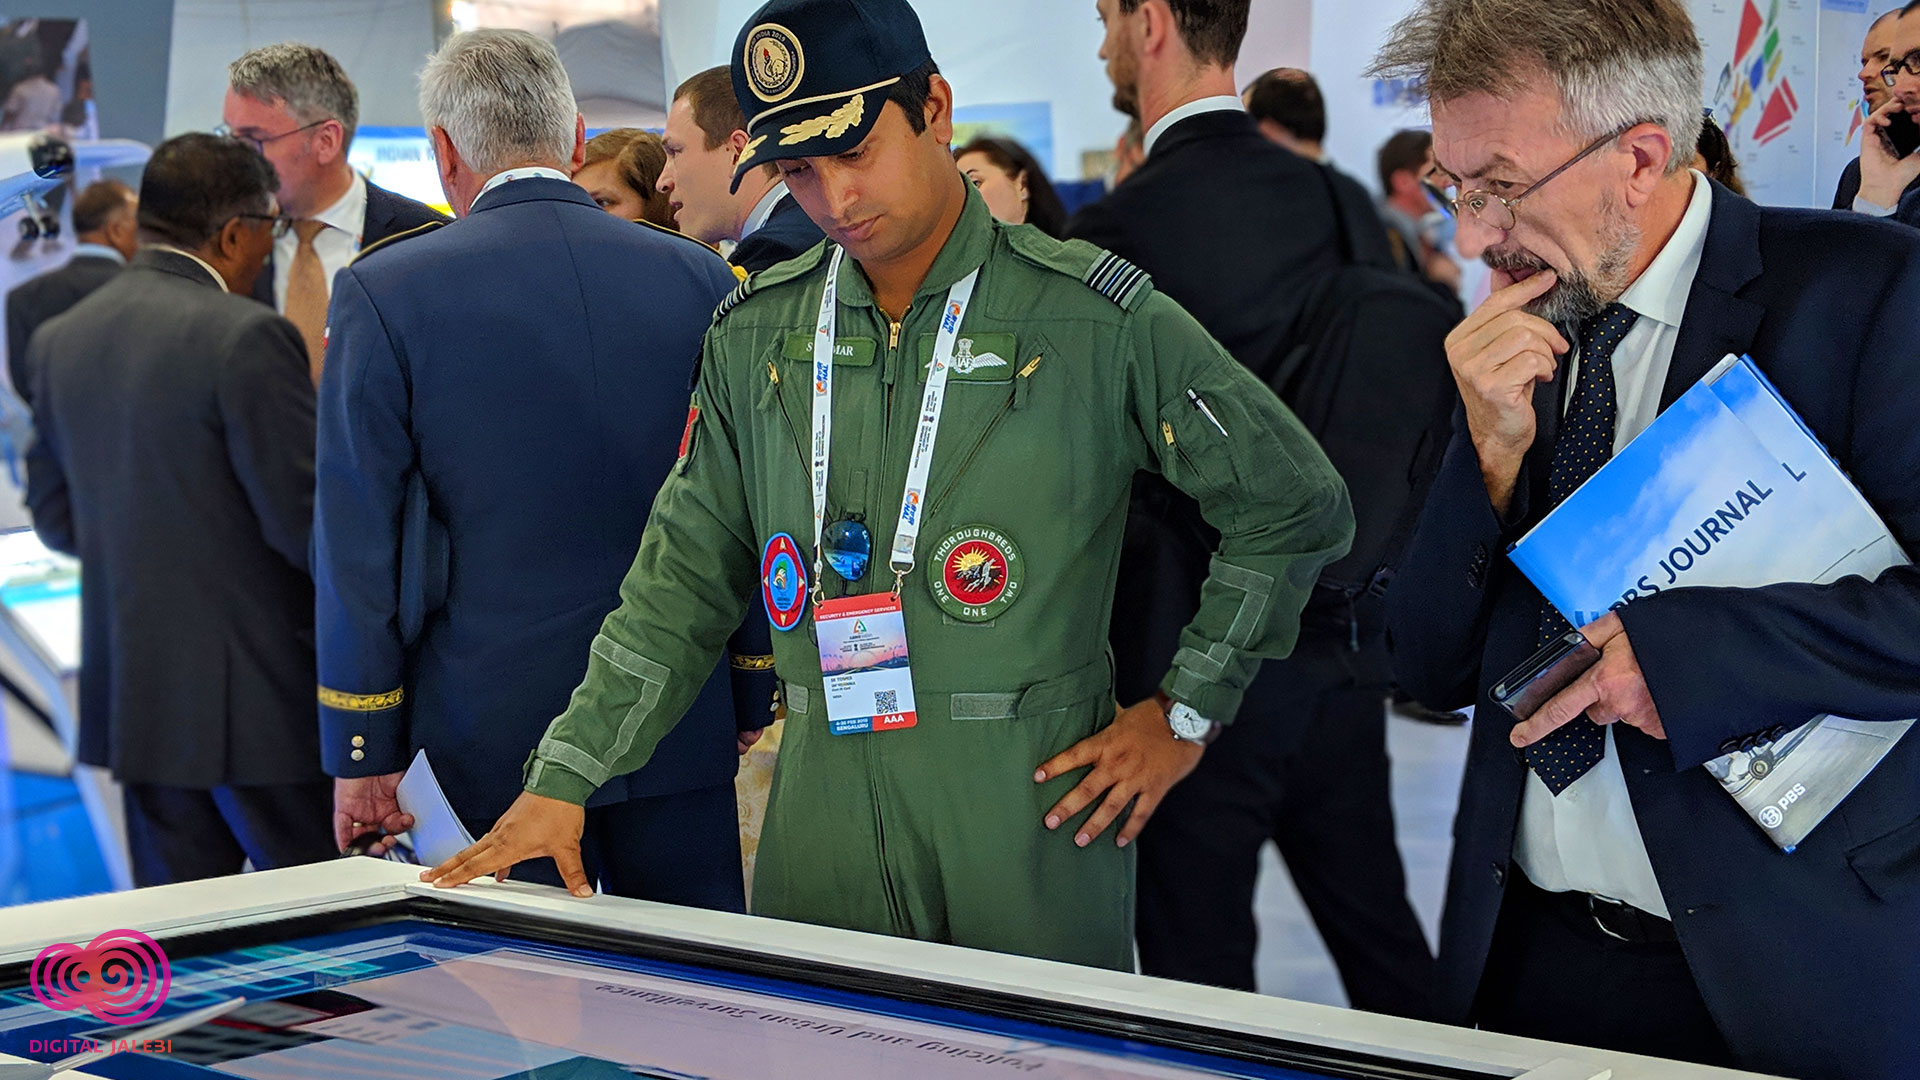 HAL Aero India Show 2019 - Digital Jalebi